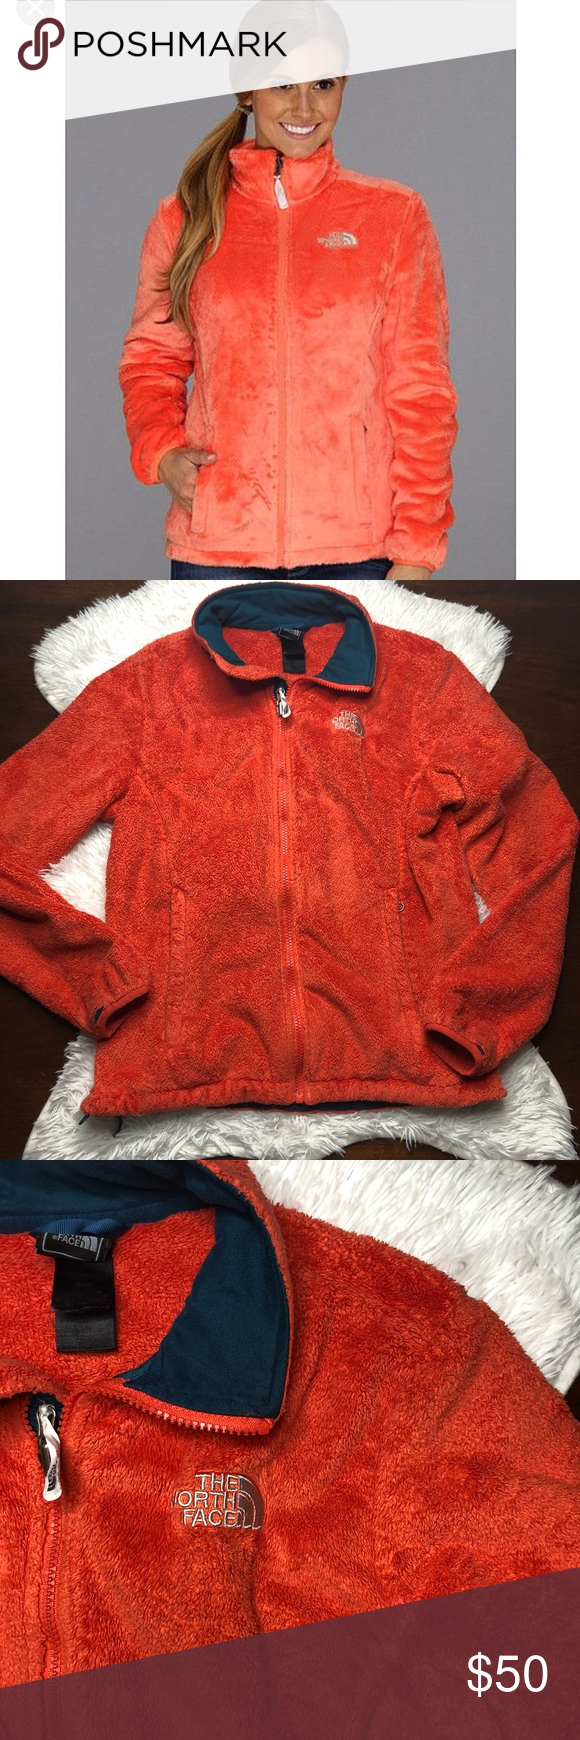 The North Face Osito Fleece Jacket Miami Orange Vguc Normal Wear From Washing But No Flaws Miami Orange Bright Size Fleece Jacket Jackets North Face Osito [ 1740 x 580 Pixel ]